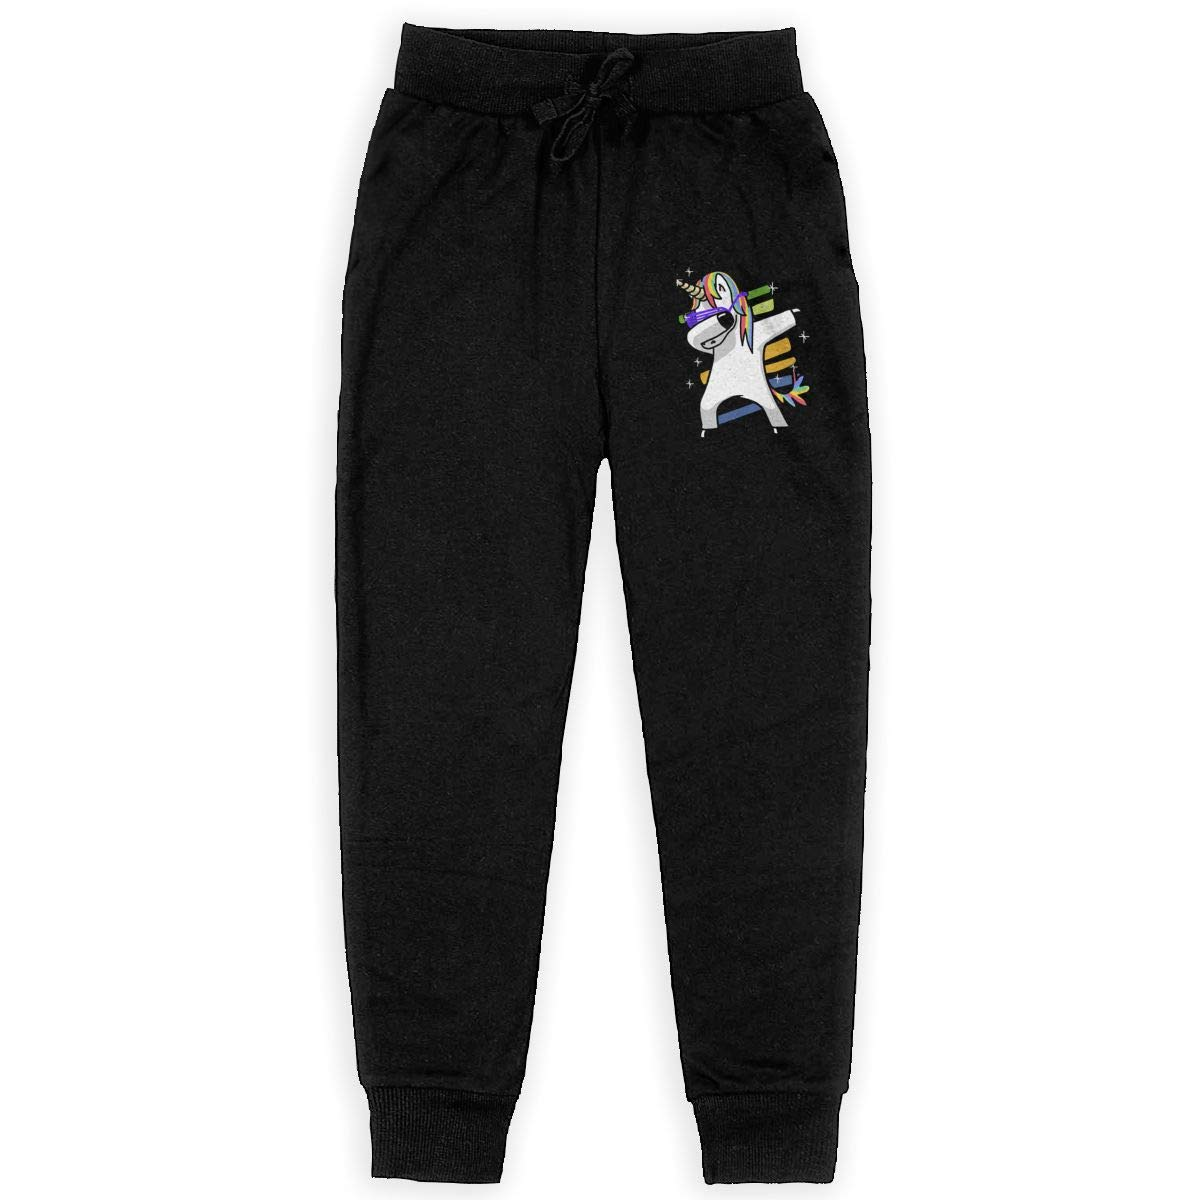 Deftones Logo Big Boys Girls Casual Jogger Soft Training Pants Elastic Waist